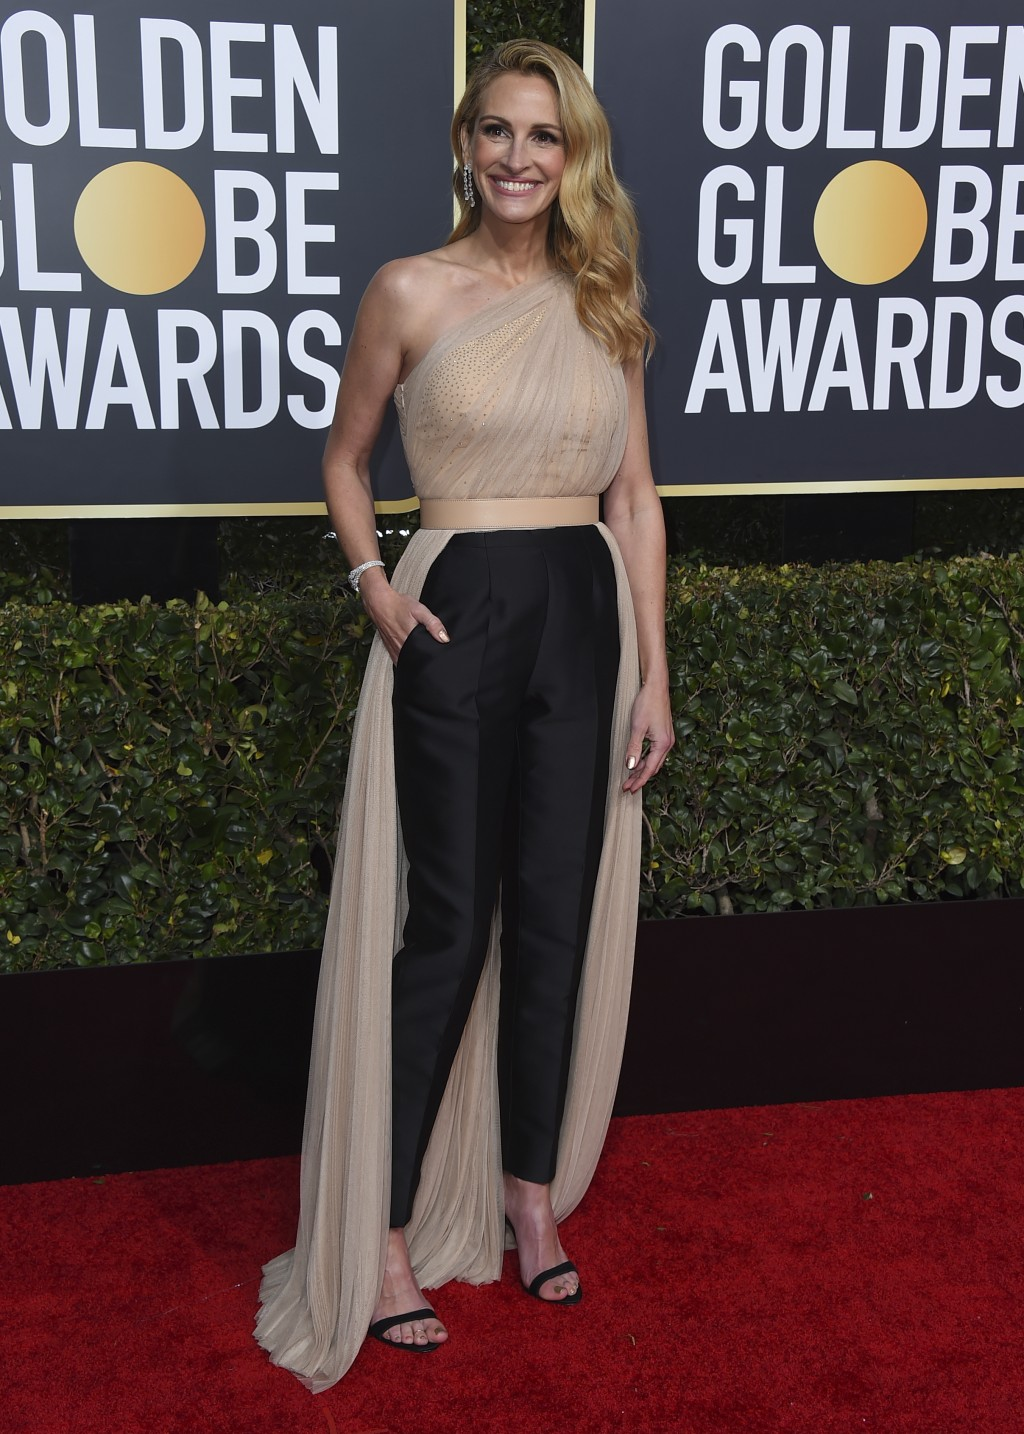 Julia Roberts arrives at the 76th annual Golden Globe Awards at the Beverly Hilton Hotel on Sunday, Jan. 6, 2019, in Beverly Hills, Calif. (Photo by J